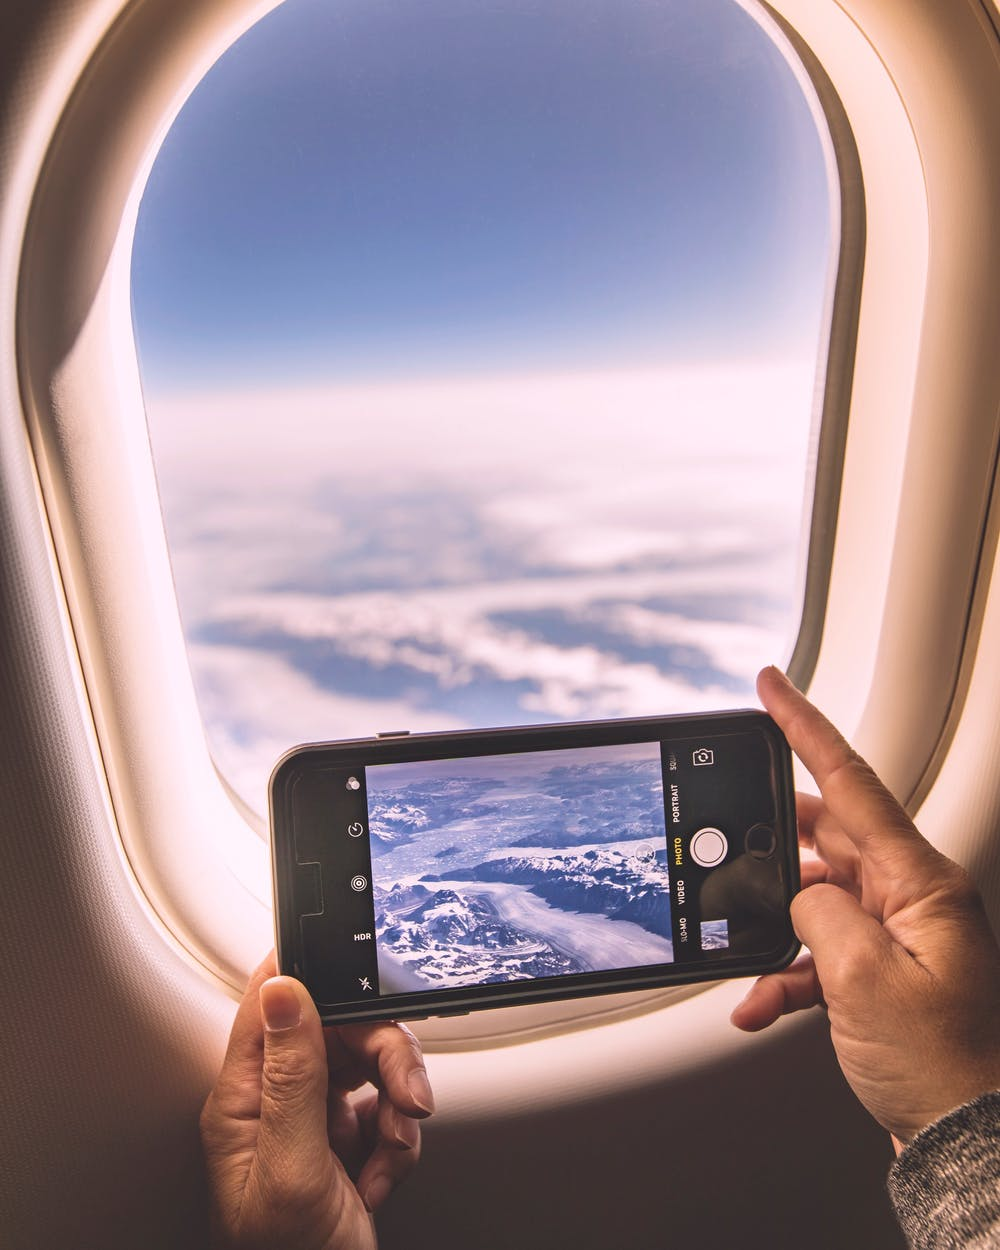 Using your phone on a plane is safe – but for now you still